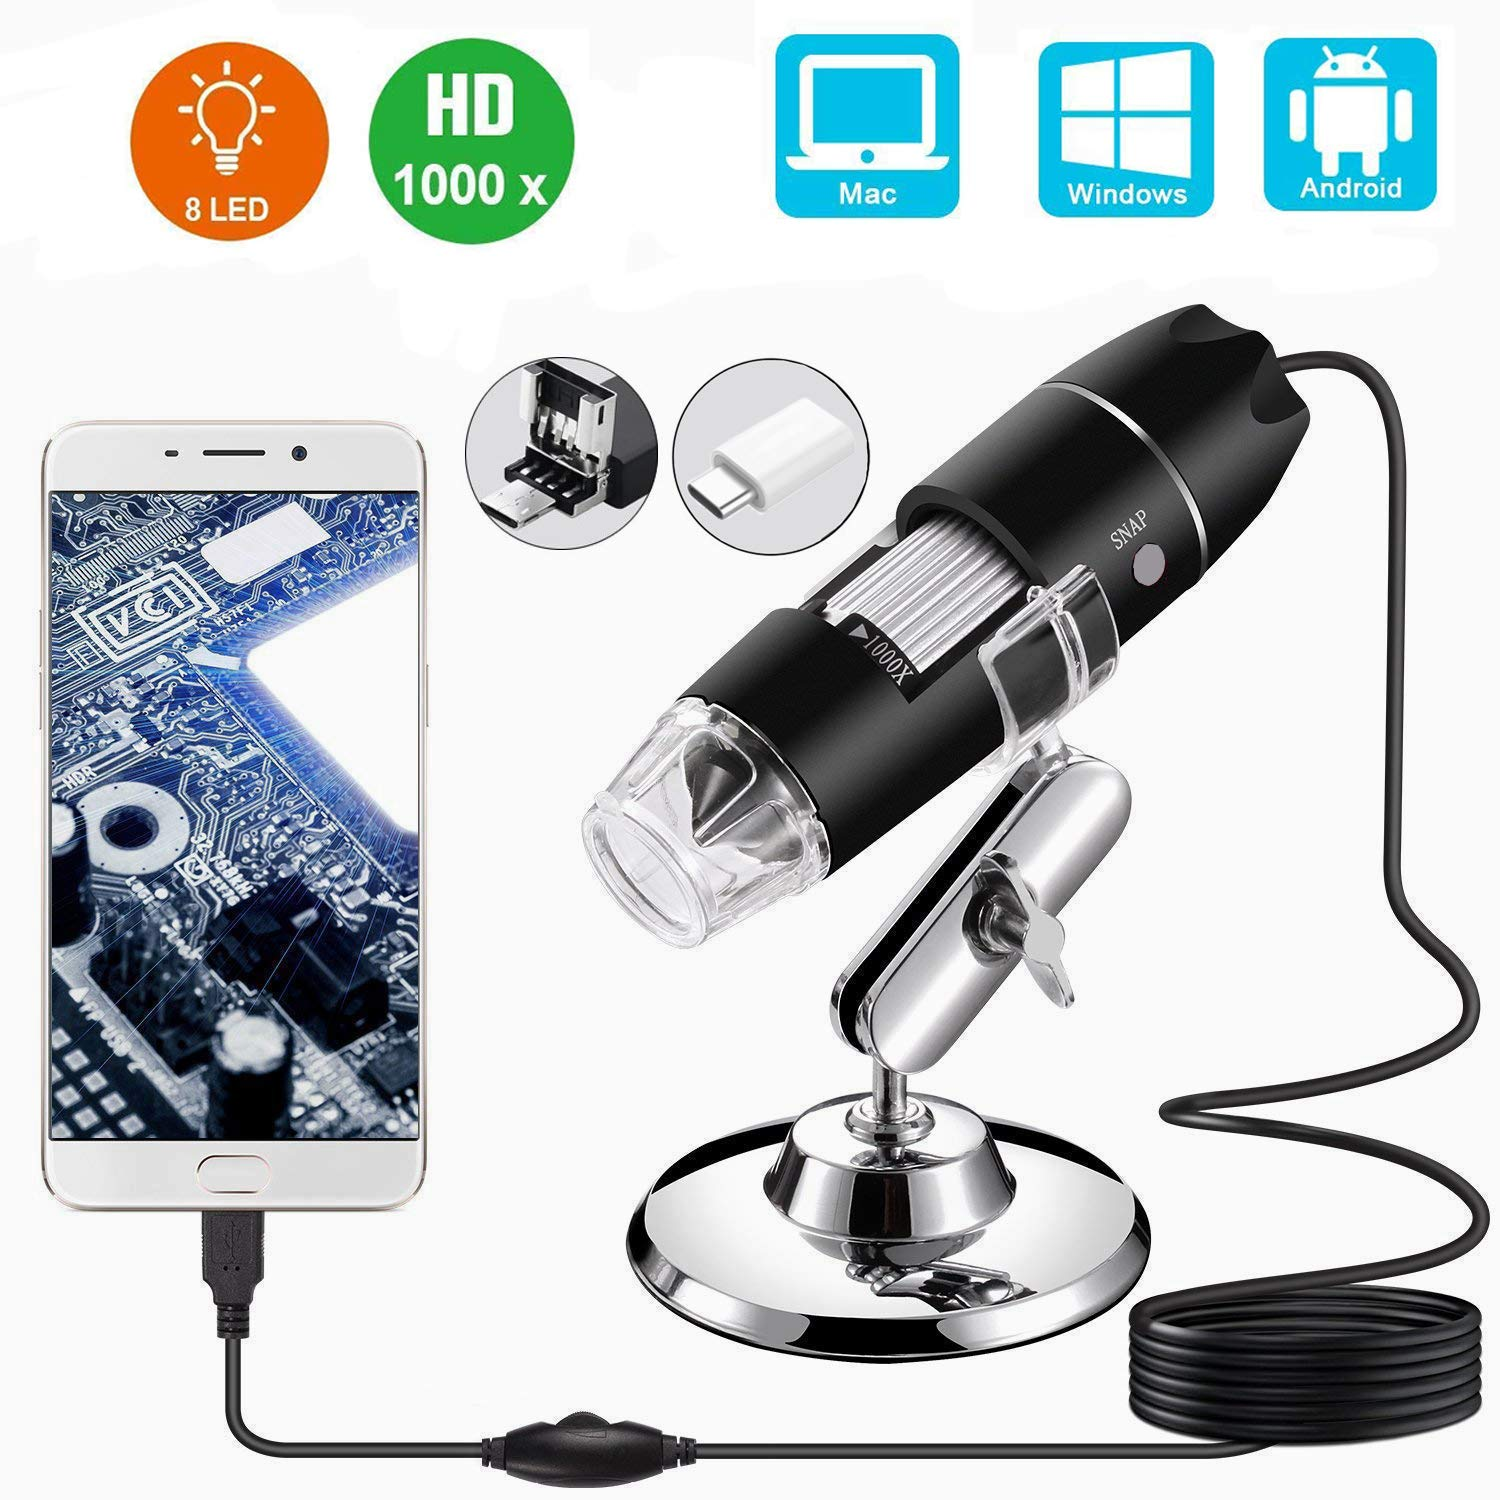 Top 10 Best Microscope for Kids Reviews in 2021 12